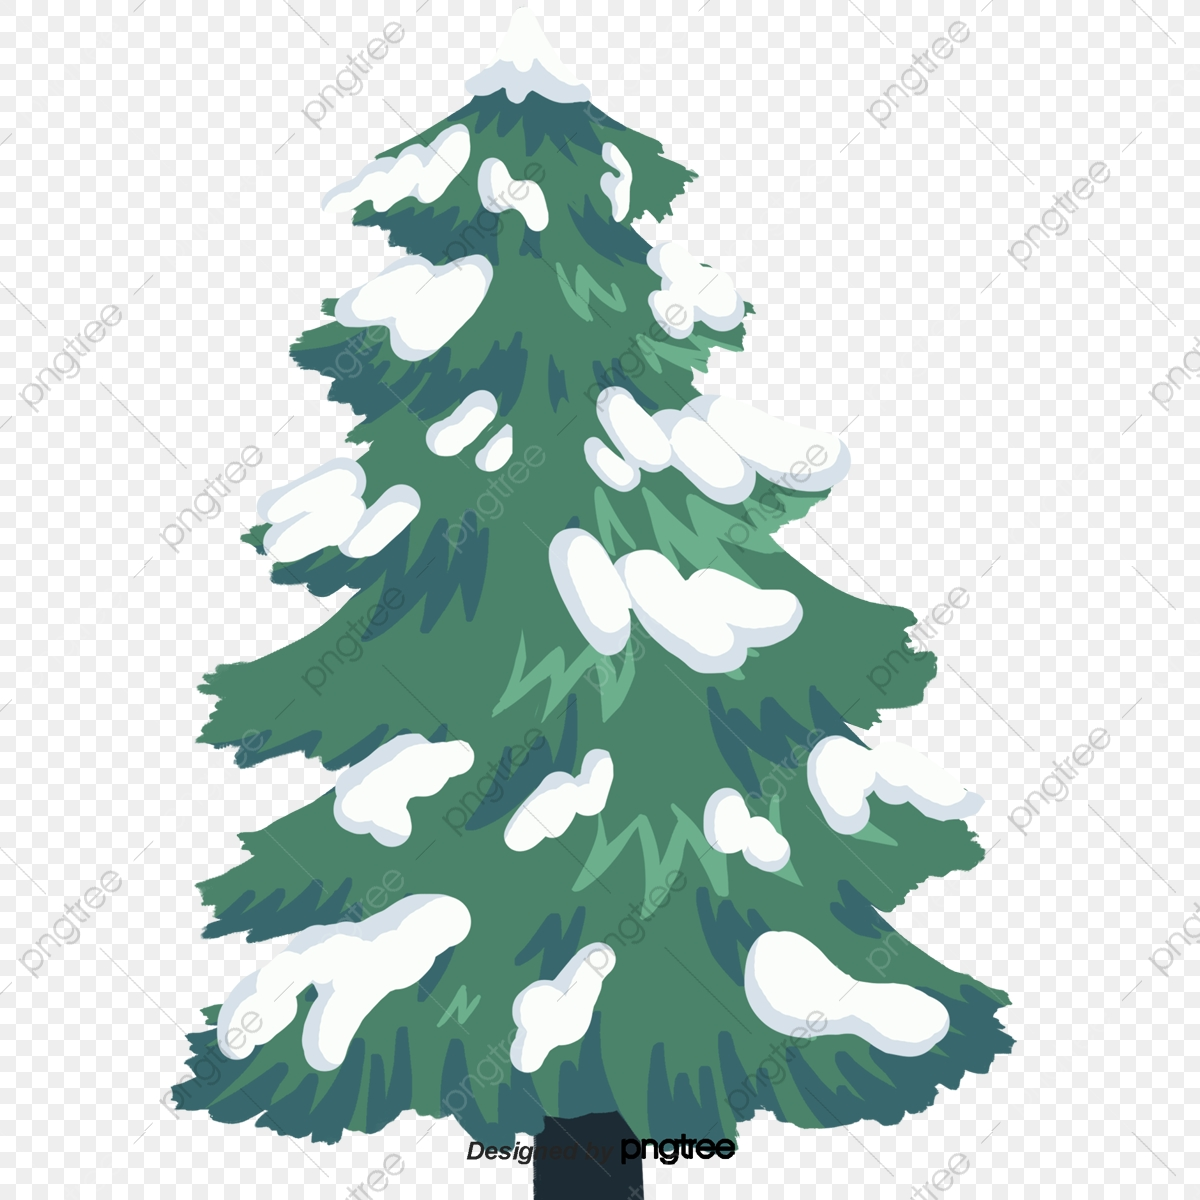 Cartoon Trees With Snow Winter Scenes Cold Png Transparent Clipart Image And Psd File For Free Download Download this free vector about watercolor evergreen trees, and discover more than 10 million professional graphic resources on freepik. https pngtree com freepng cartoon trees with snow 4284508 html